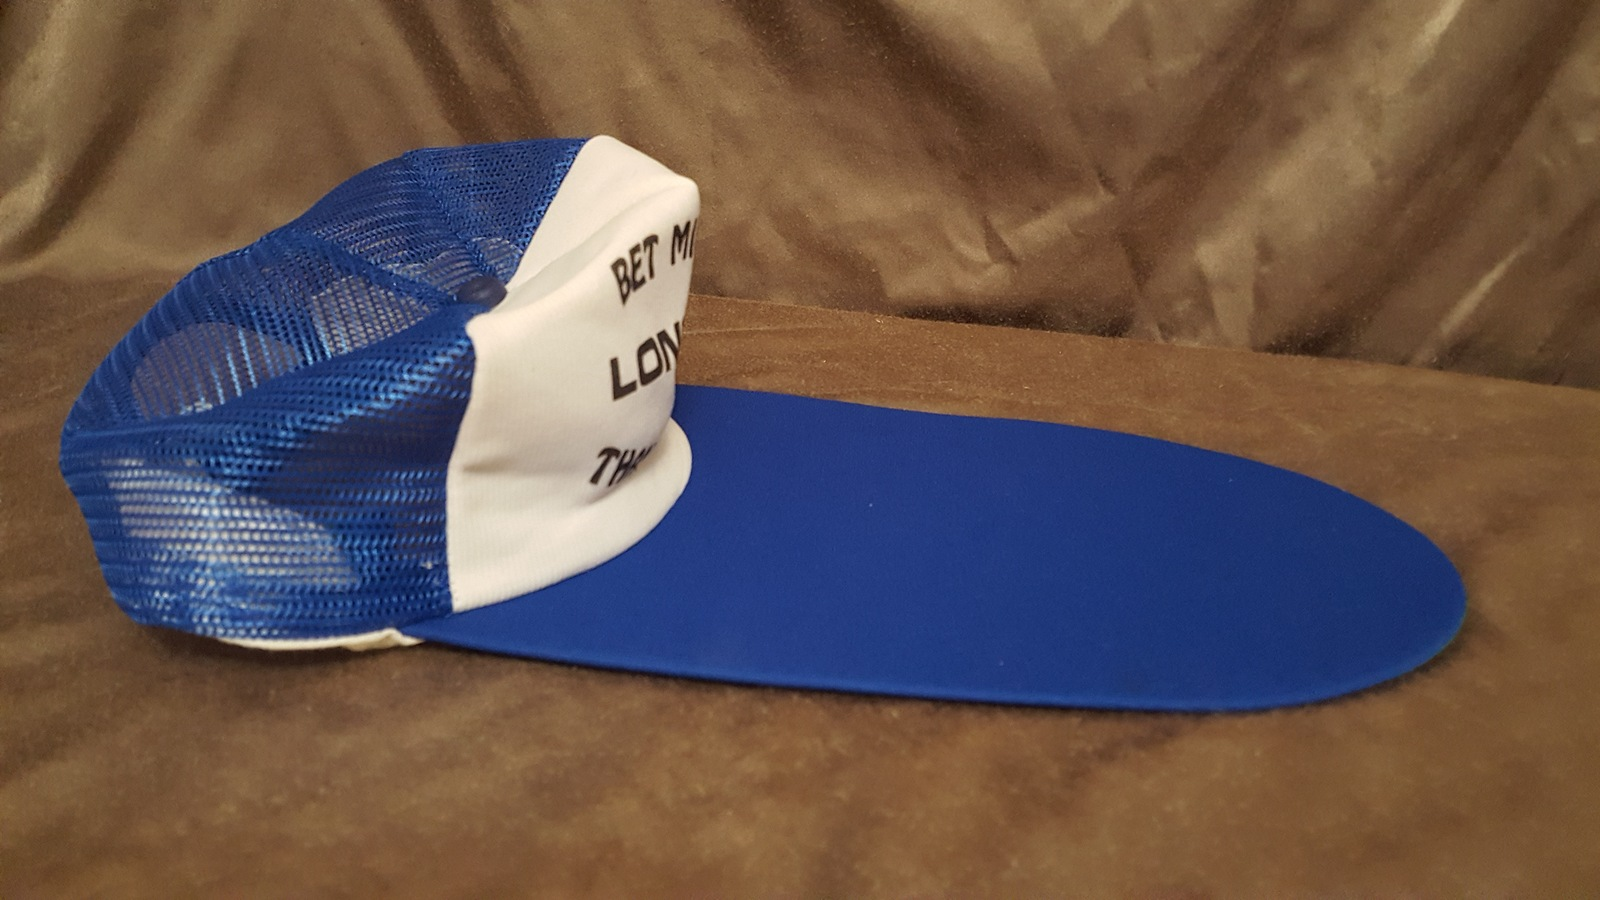 2a5bd0f4 Vintage Trucker Hat- You Bet Mines Longer and 50 similar items